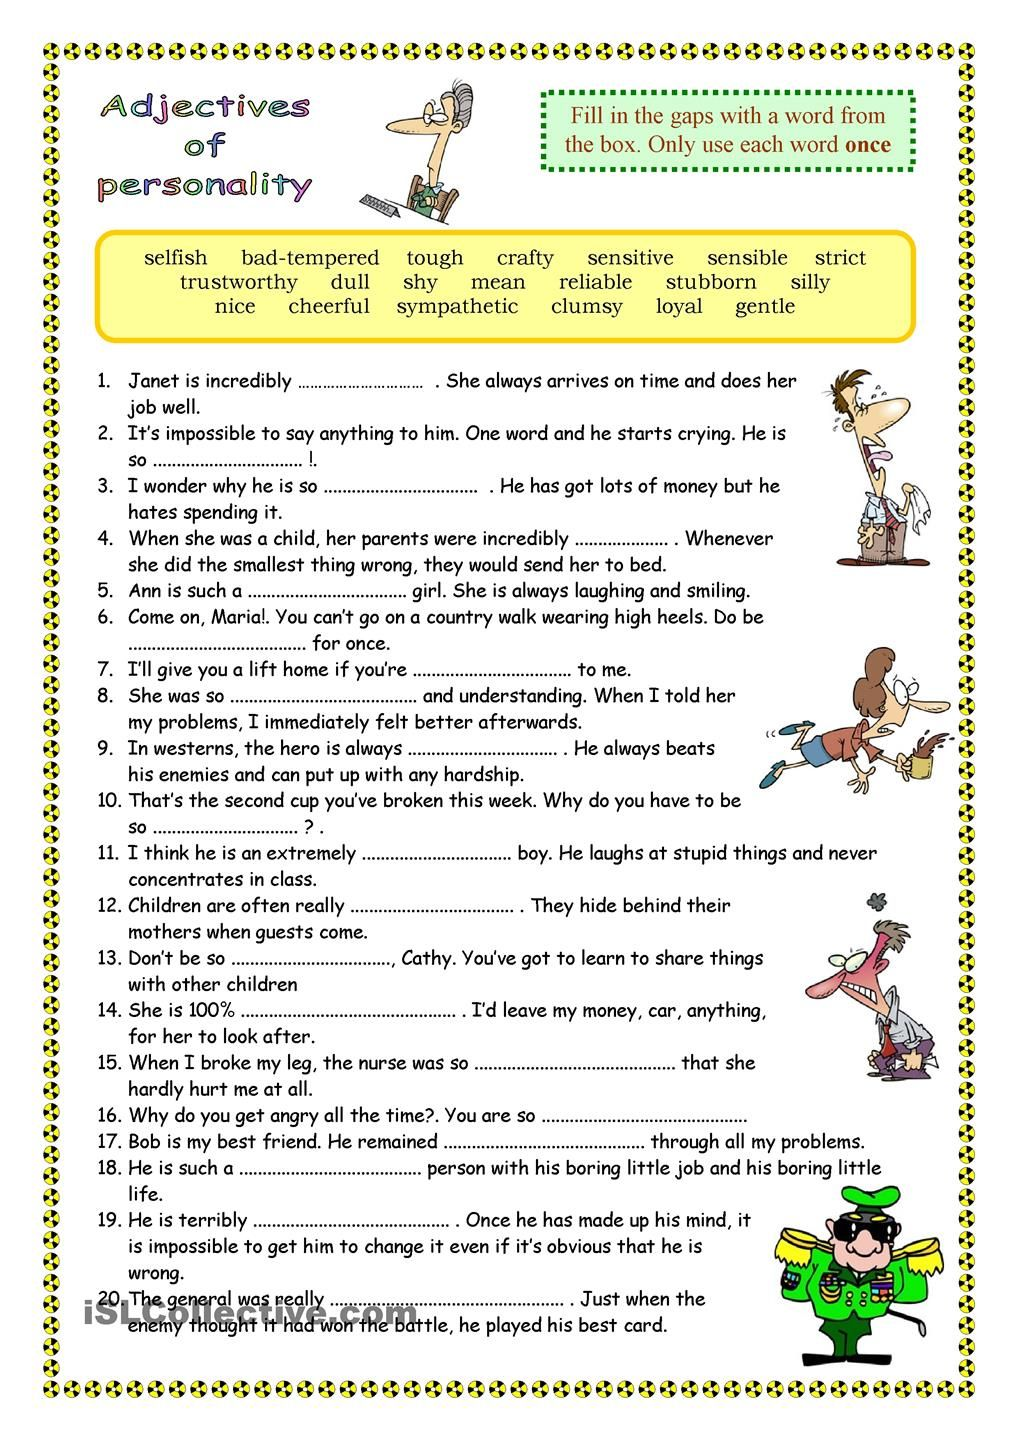 Worksheet Adjectives Printables 17 best images about adjectives on pinterest anchors student centered resources and personality adjectives